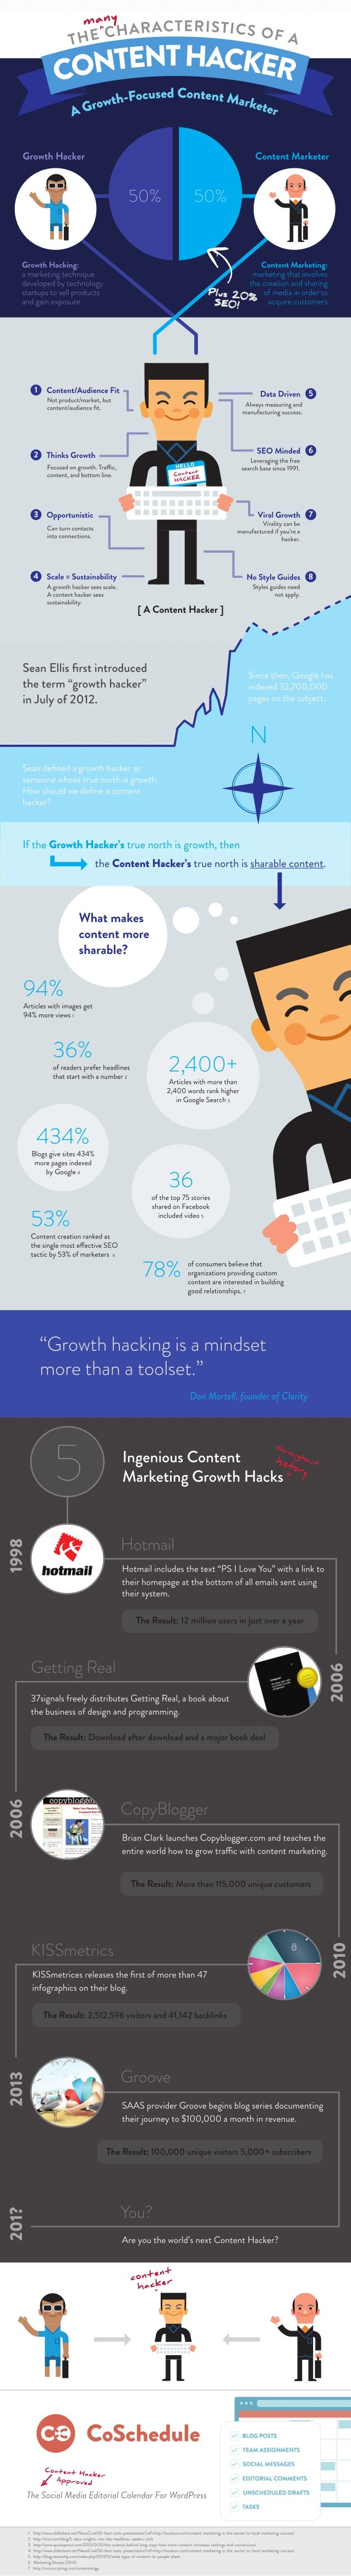 Growth Hacking: The Characteristics Of A Content Hacker [Infographic]